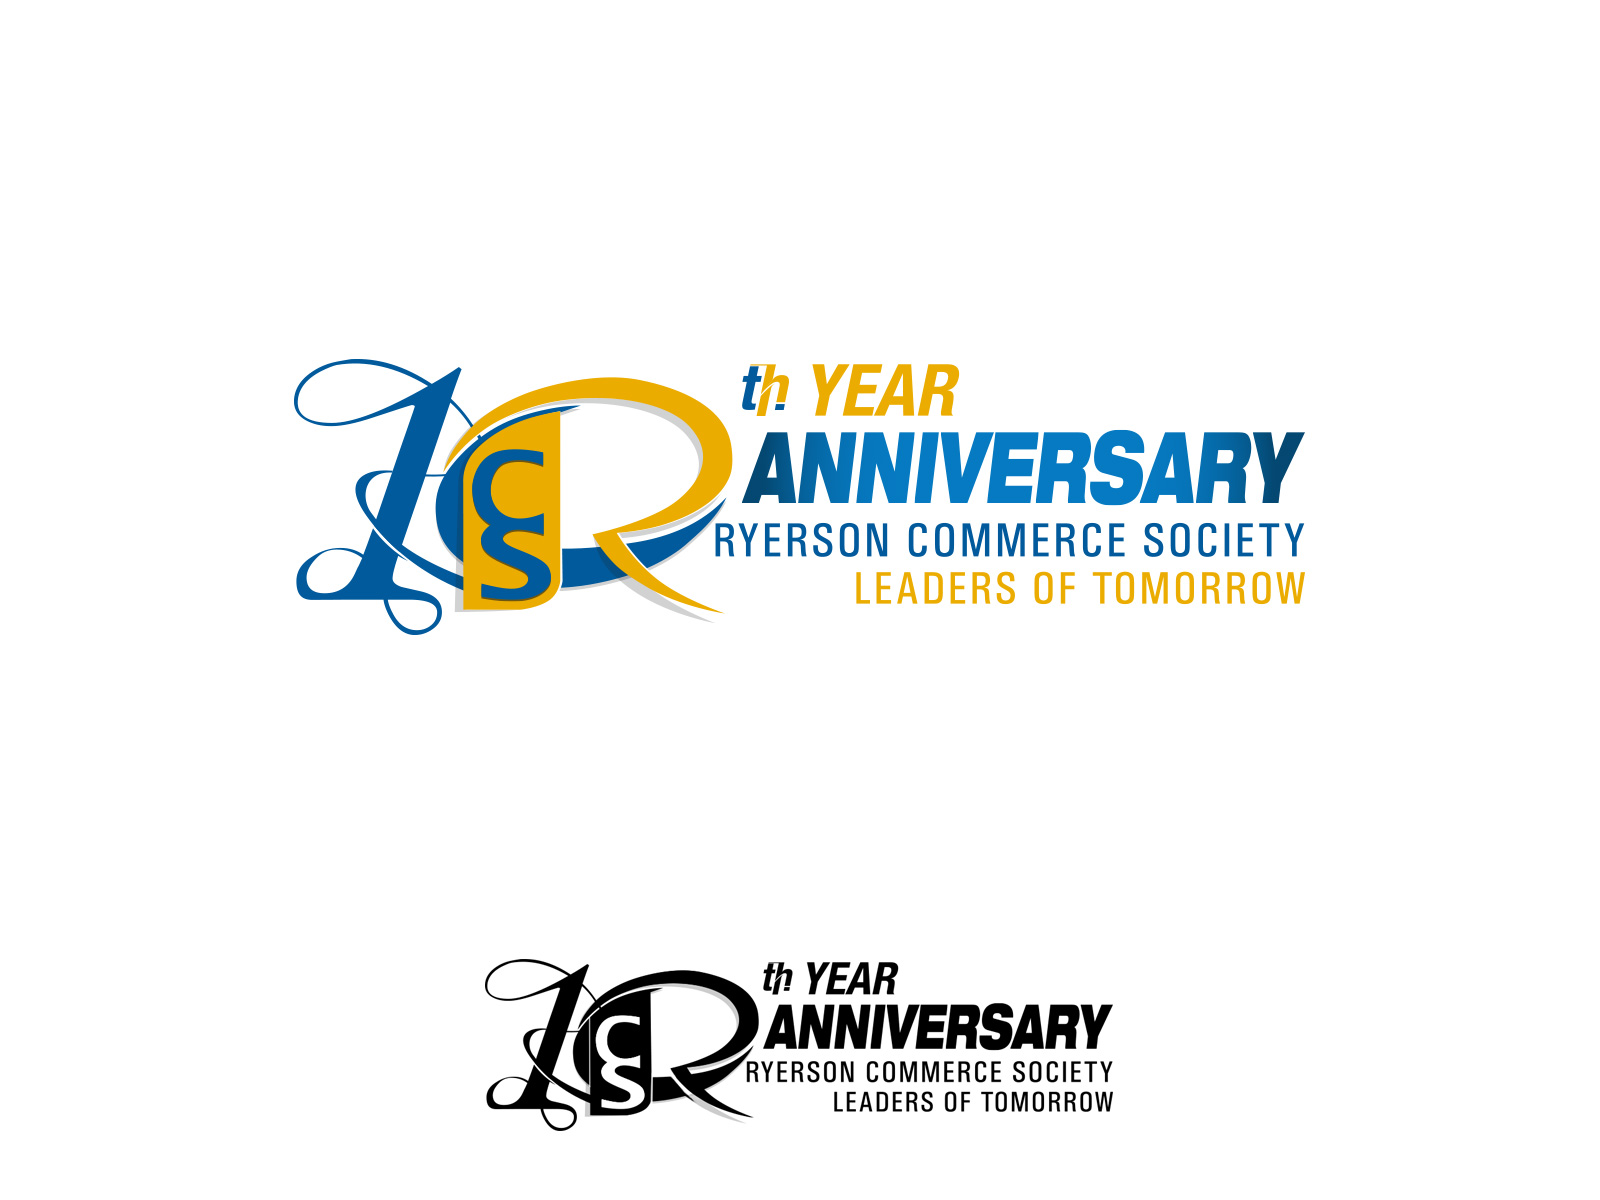 Logo Design by olii - Entry No. 81 in the Logo Design Contest 10 Year Anniversary Logo Design for the Ryerson Commerce Society.